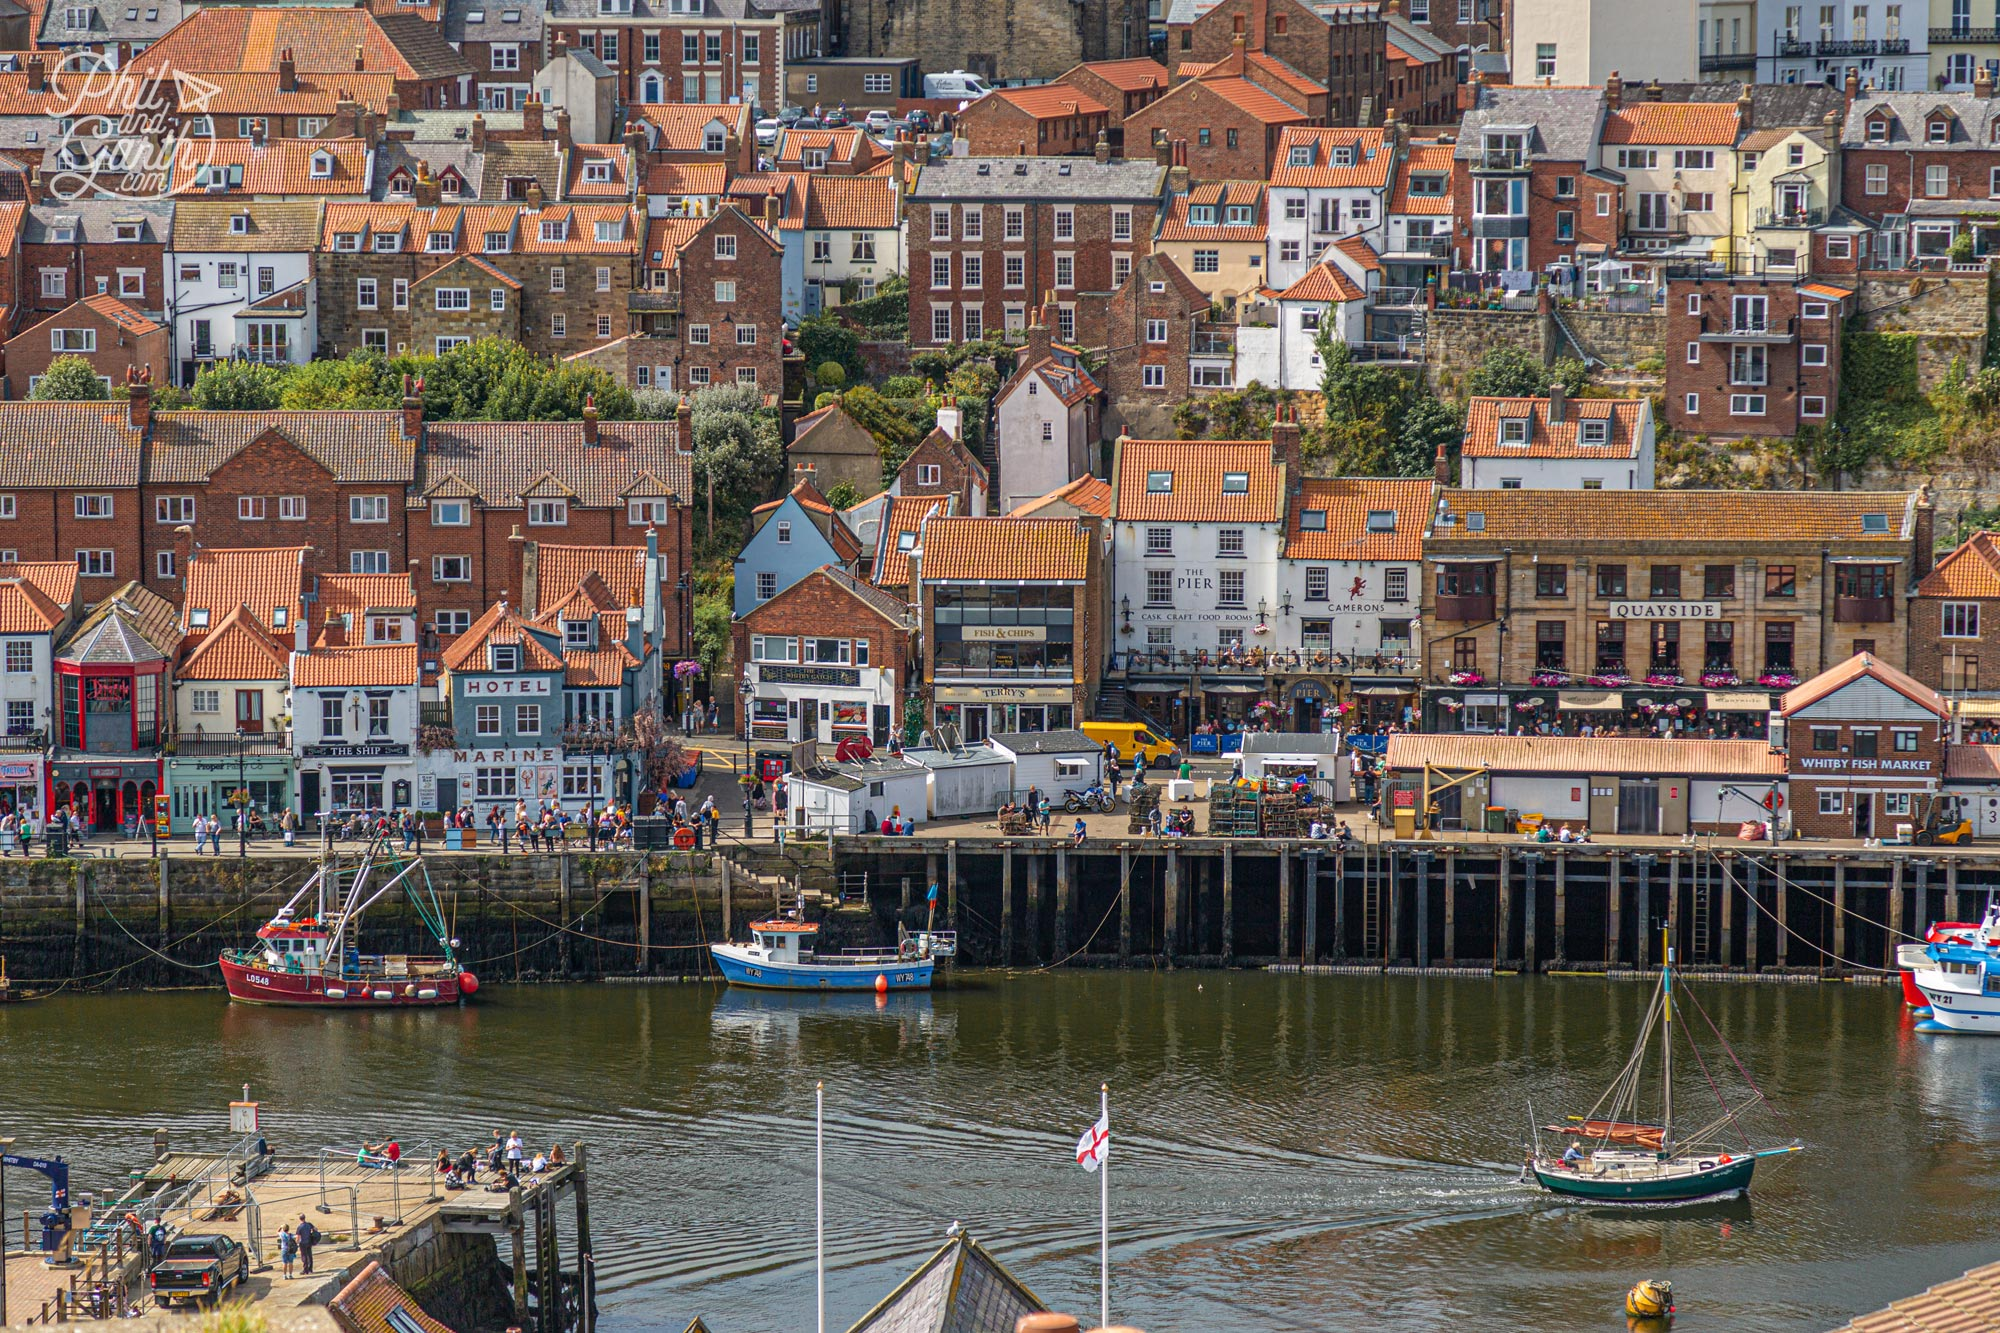 The view from the 199 Steps of Whitby's harbour and red rooftops